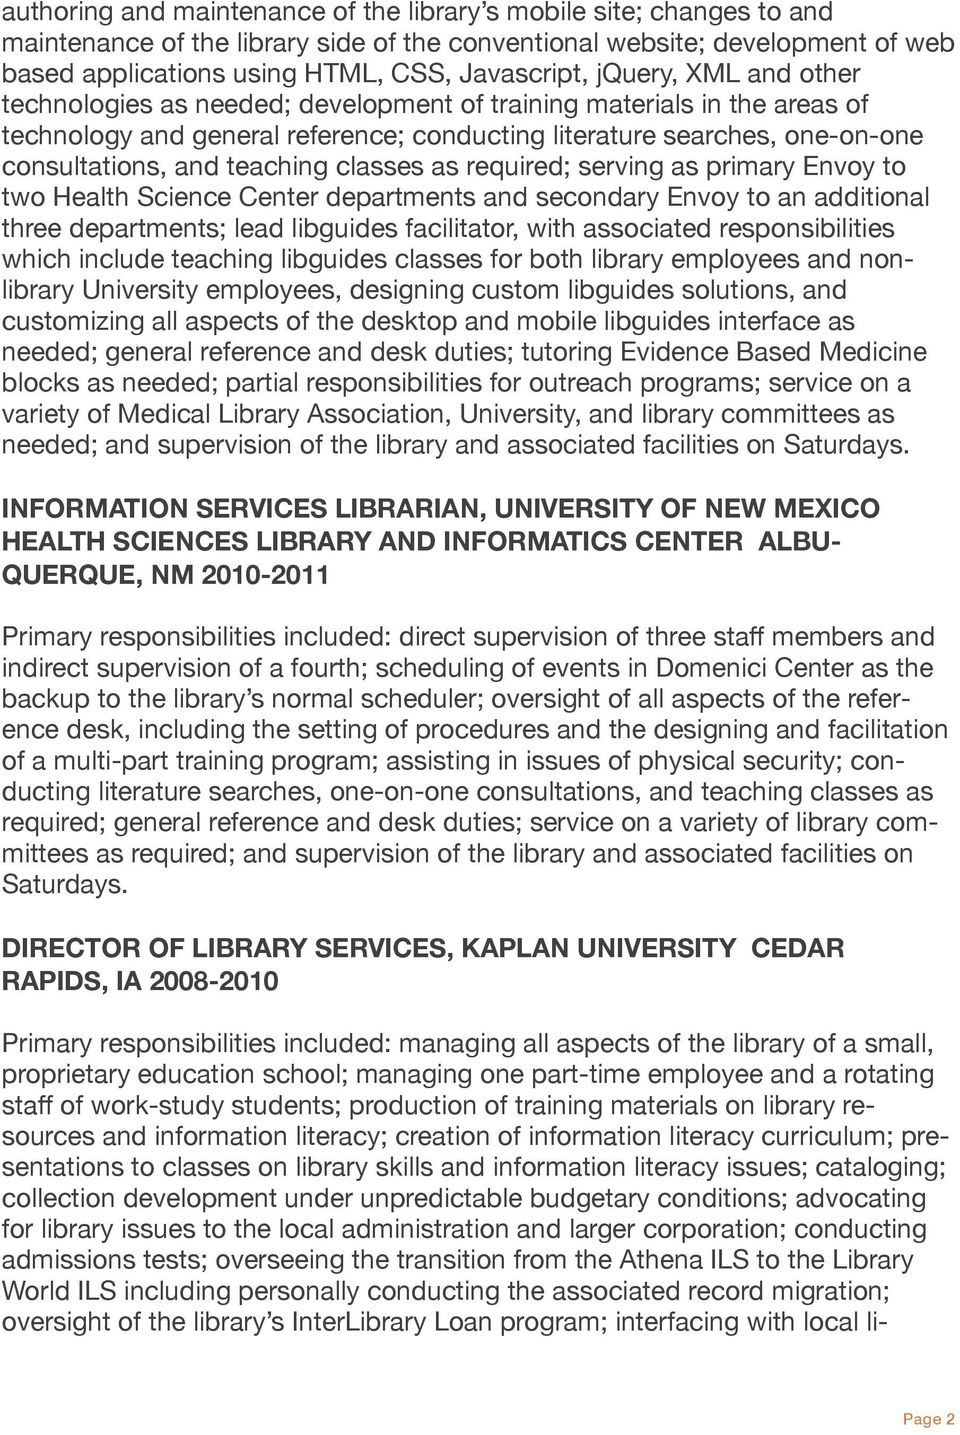 teaching classes as required; serving as primary Envoy to two Health Science Center departments and secondary Envoy to an additional three departments; lead libguides facilitator, with associated